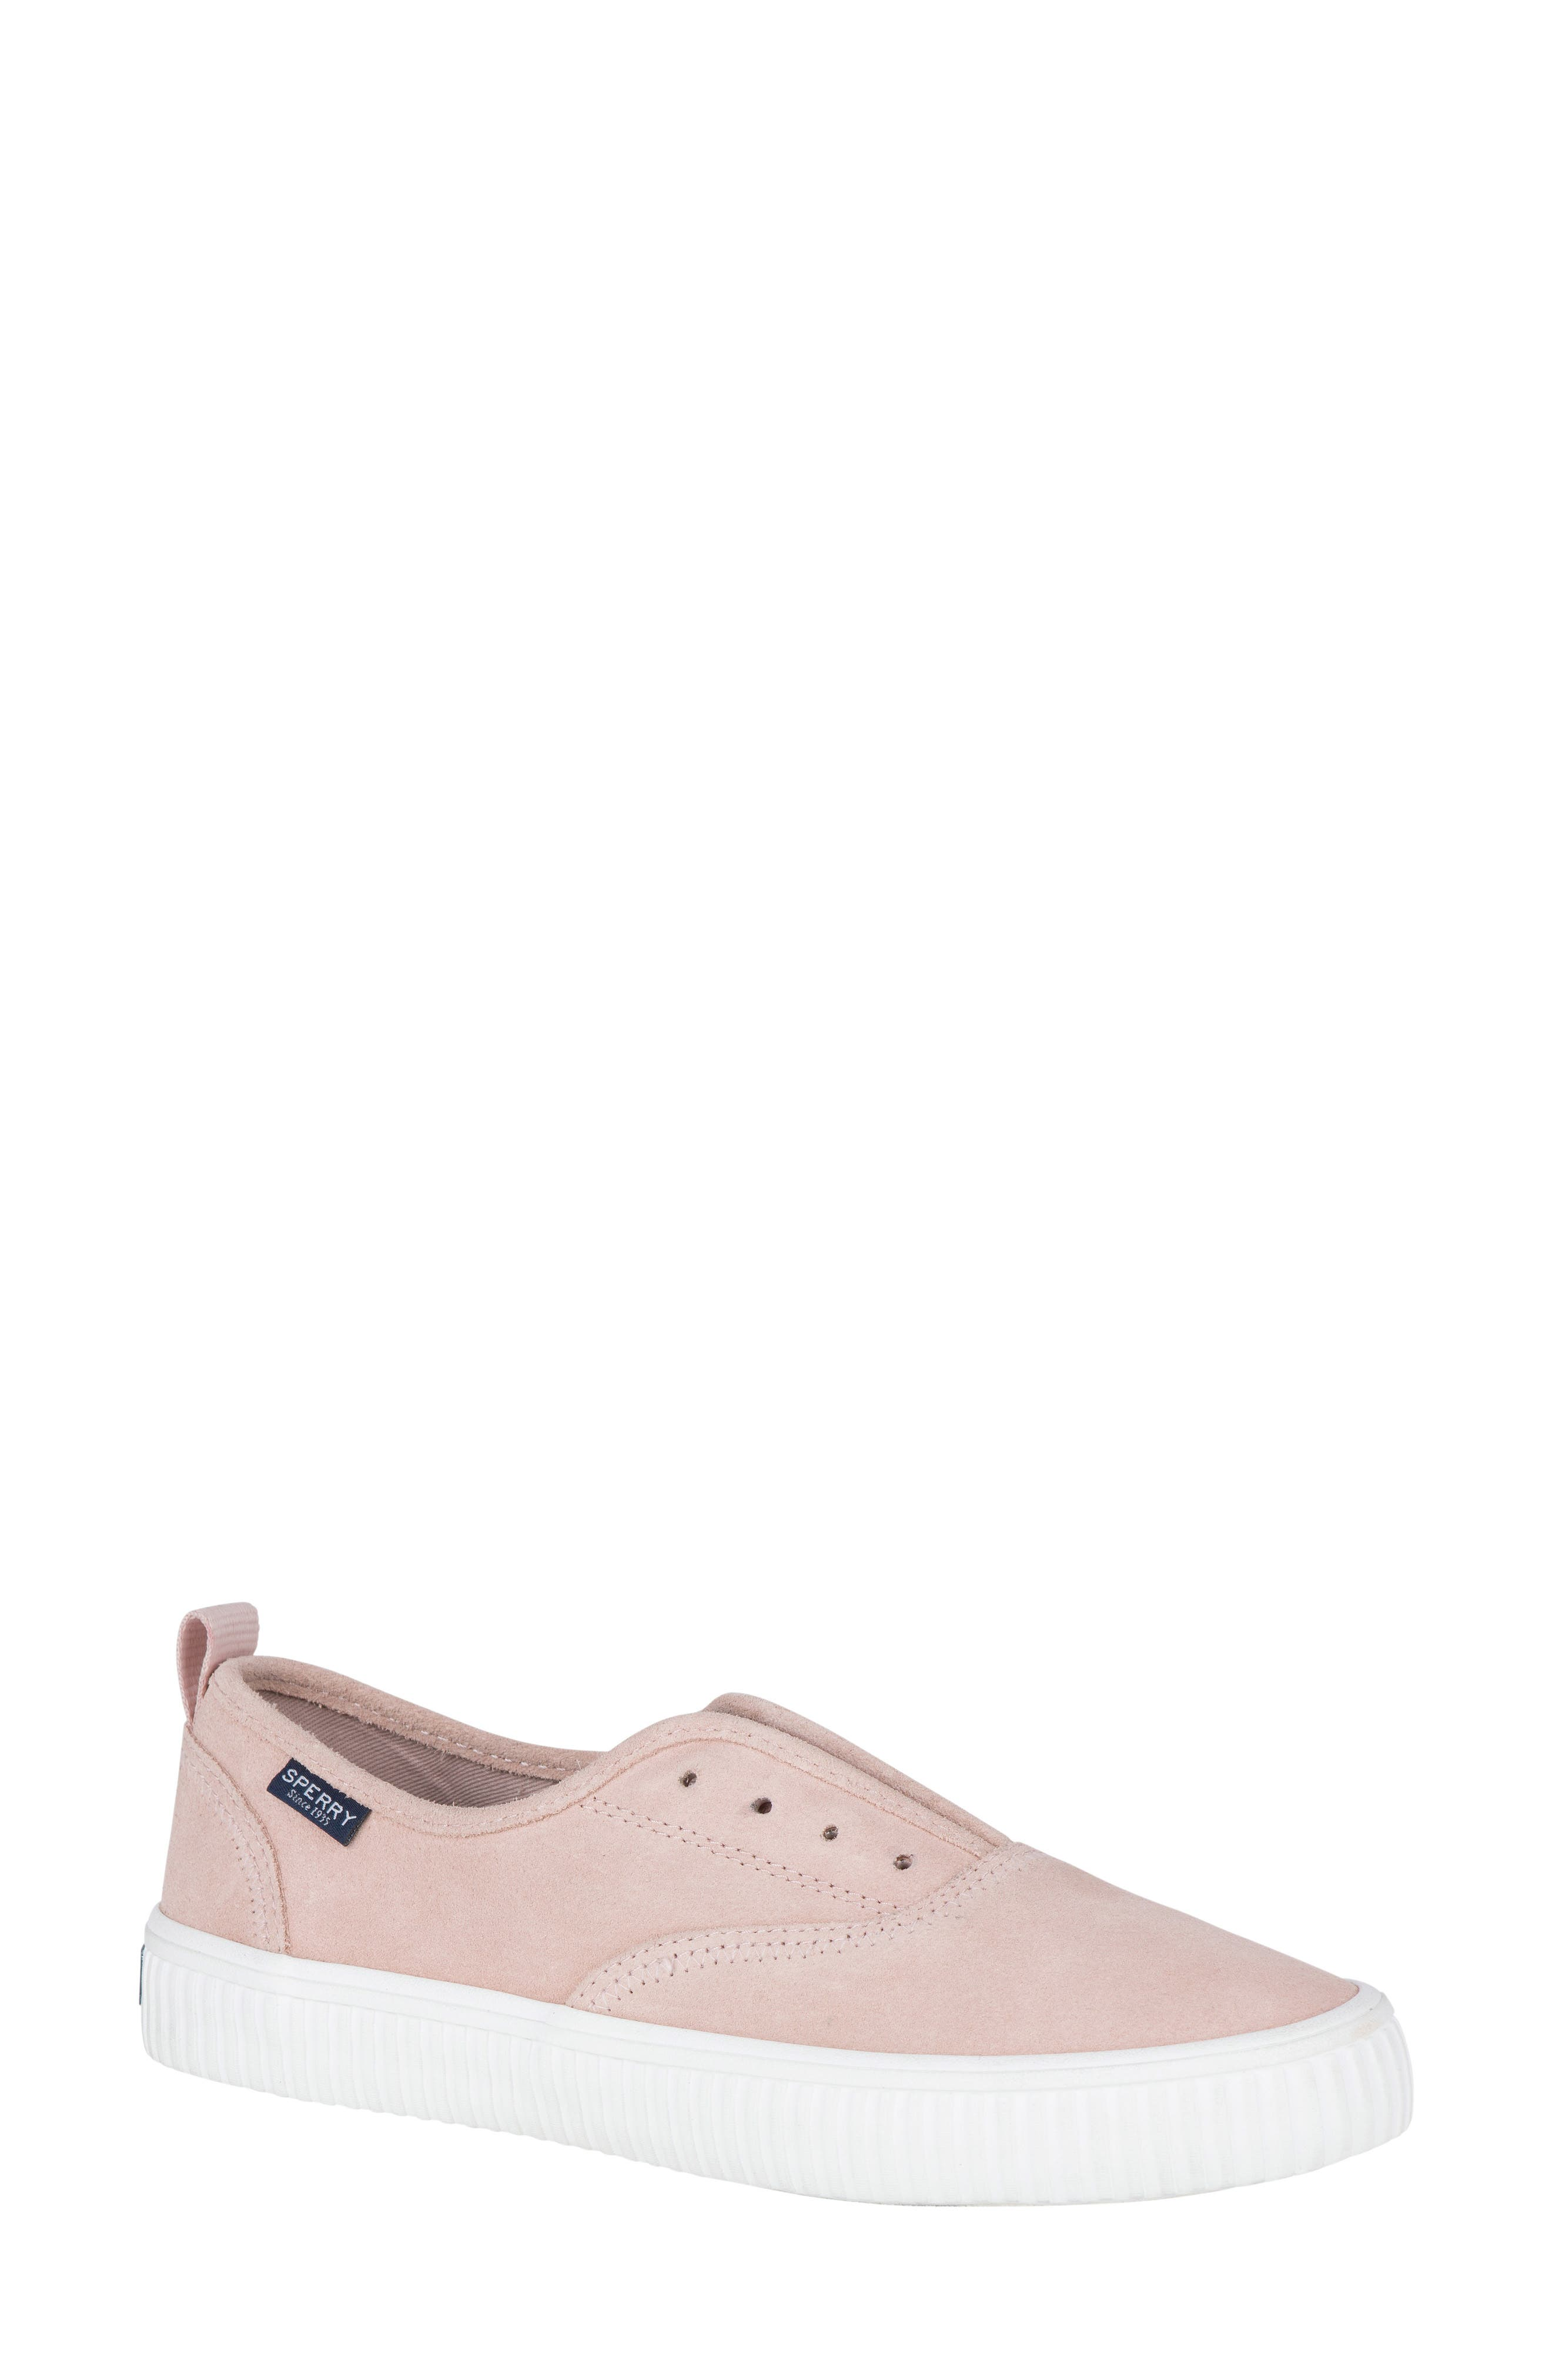 Crest Creeper Slip-On Sneaker,                             Main thumbnail 1, color,                             Rose Dust Suede